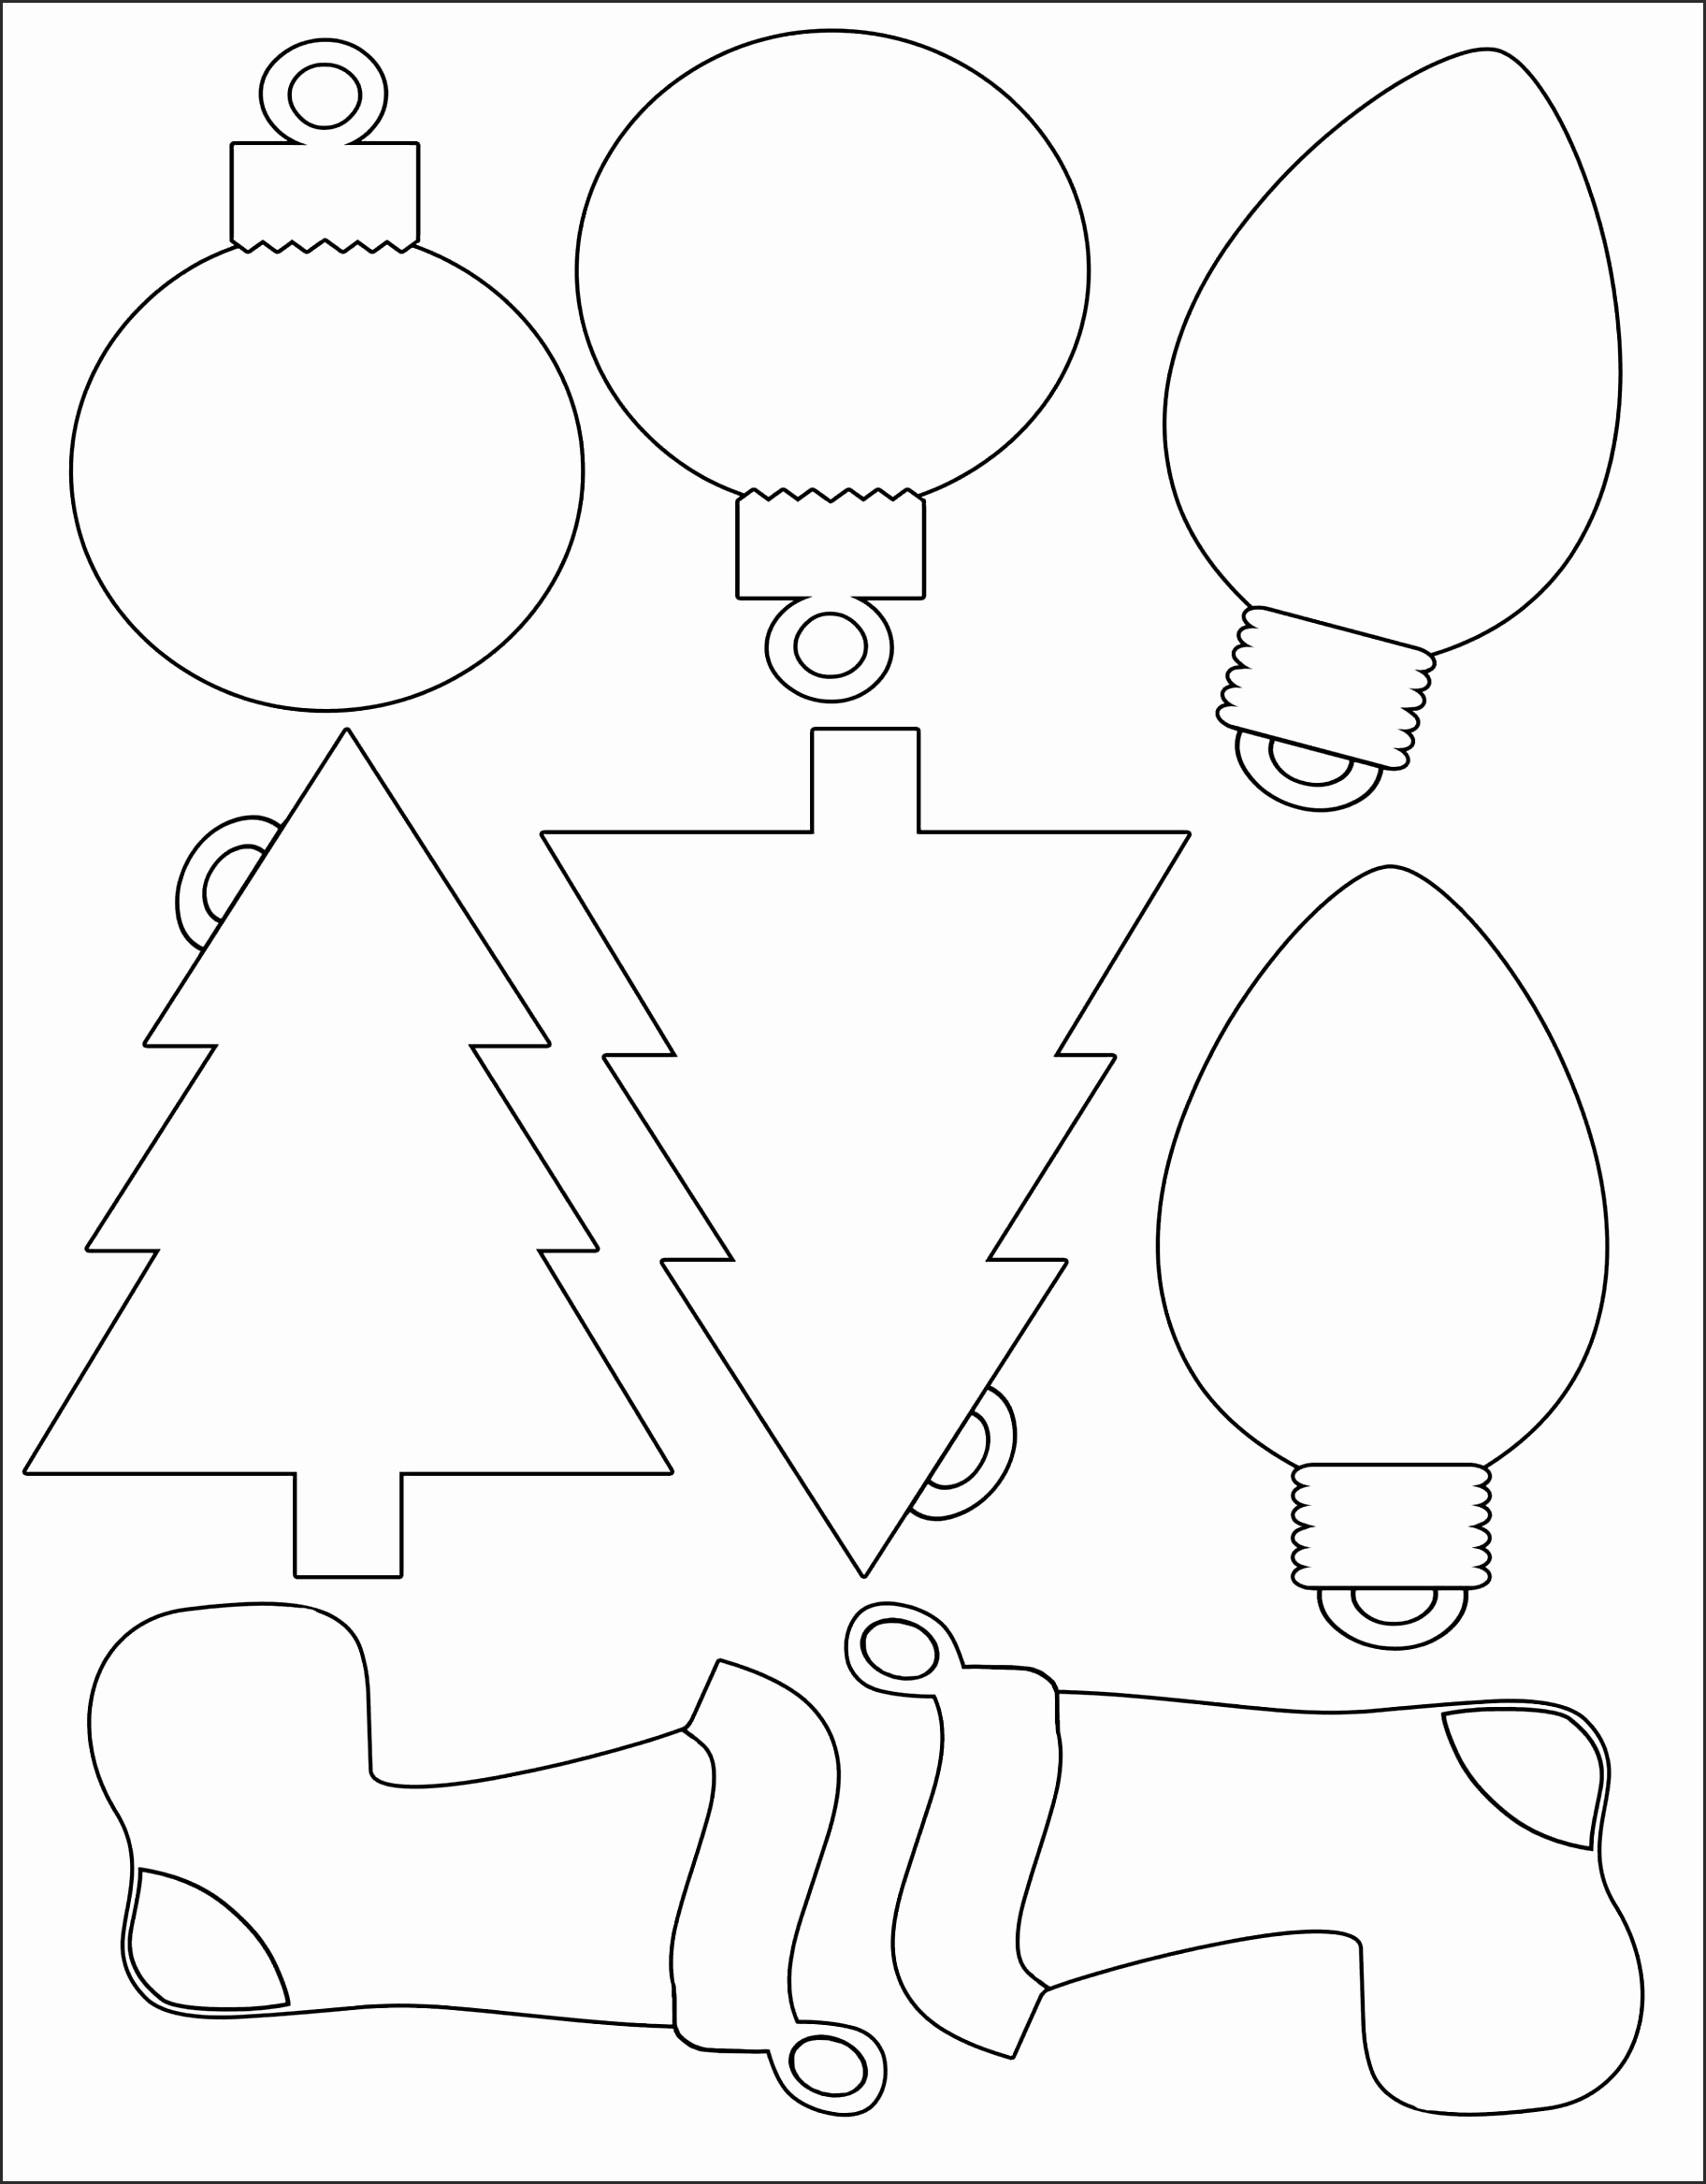 christmas tree drawing template at getdrawings com free for